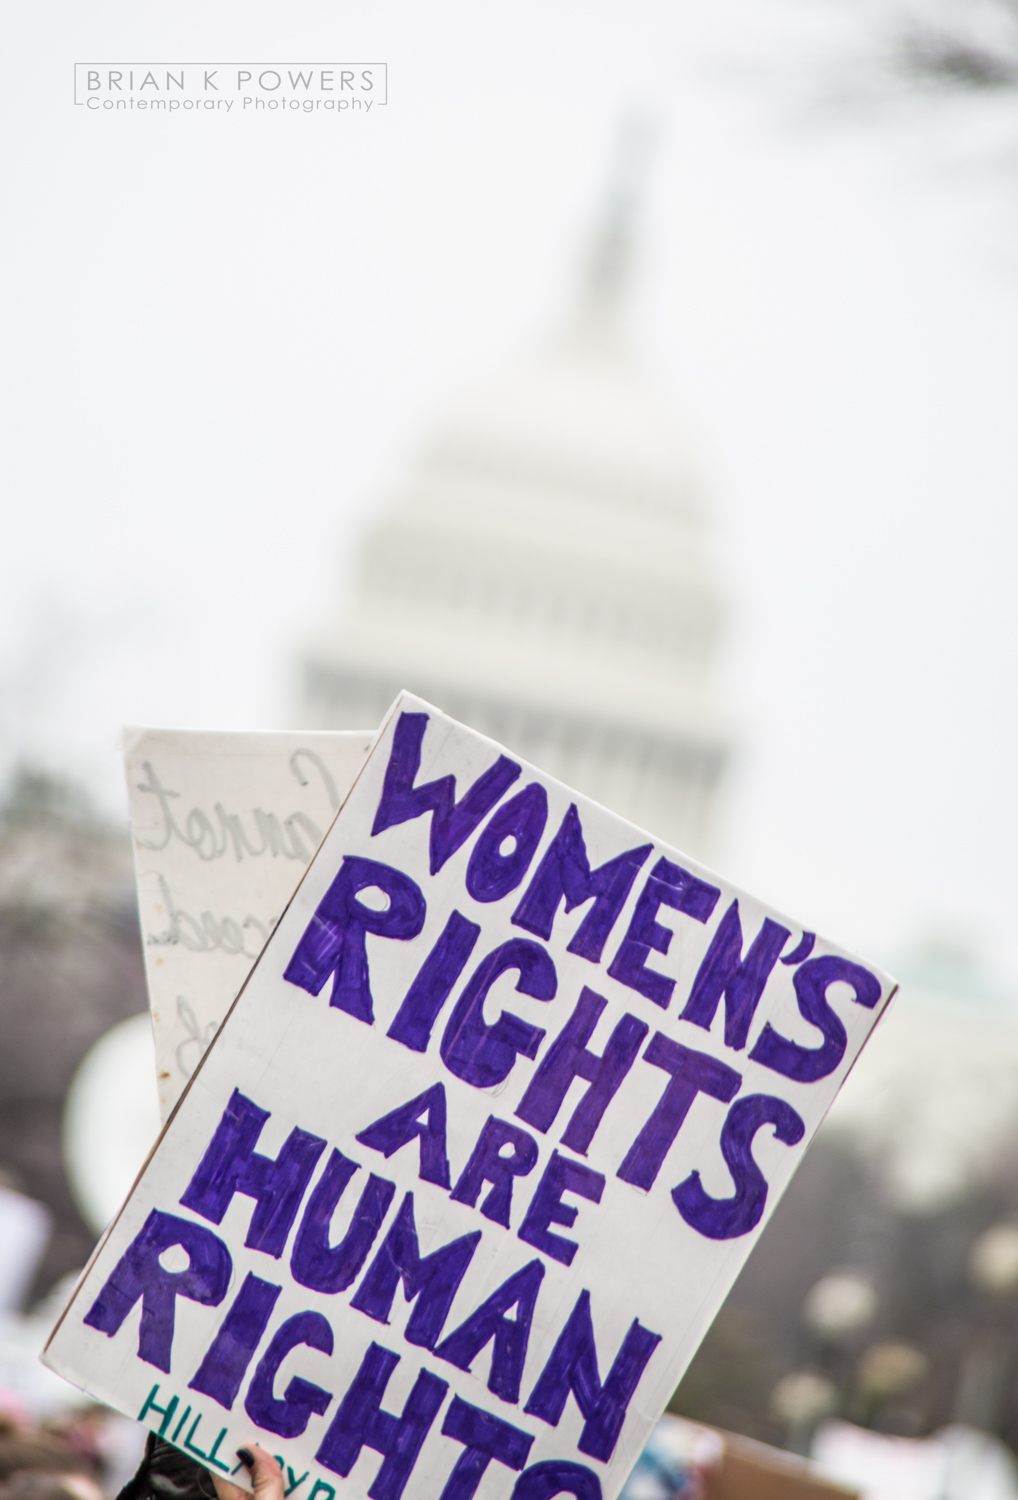 Womens-march-on-washington-2017-Brian-K-Powers-Photography-0104.jpg